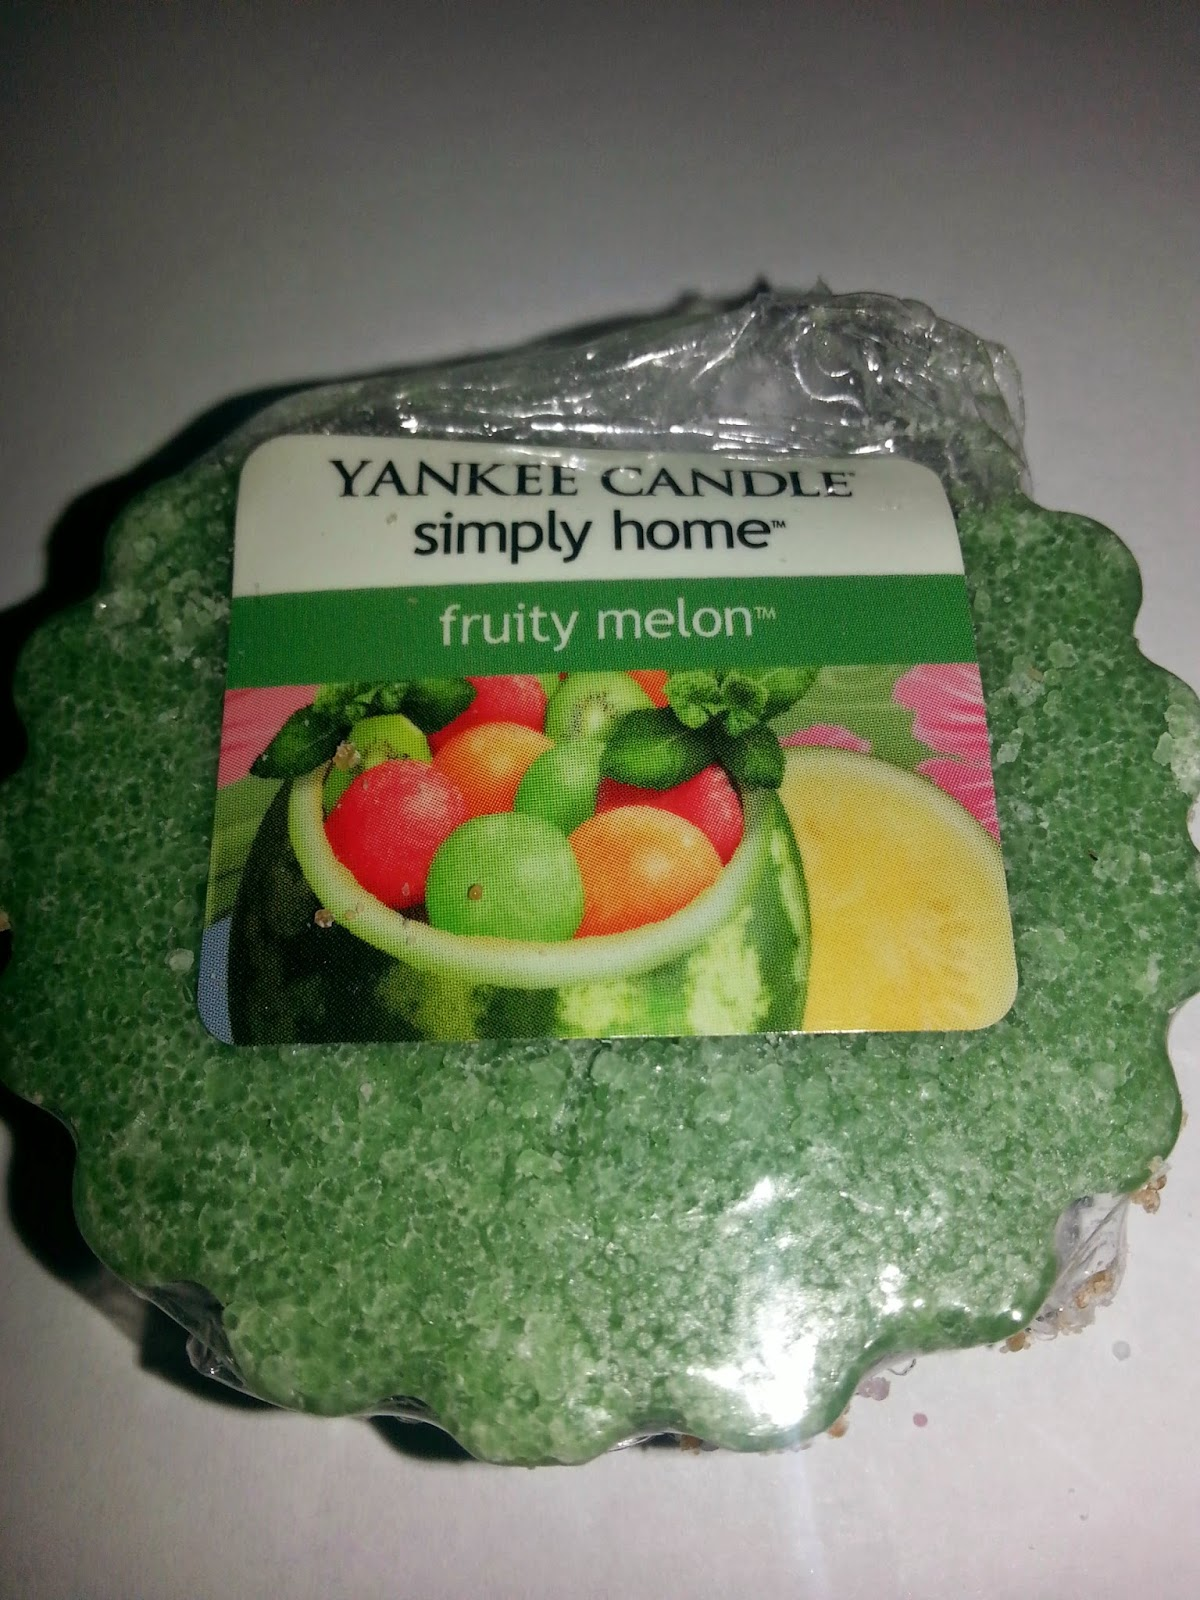 Fruity Melon - Yankee Candle (Simply Home)